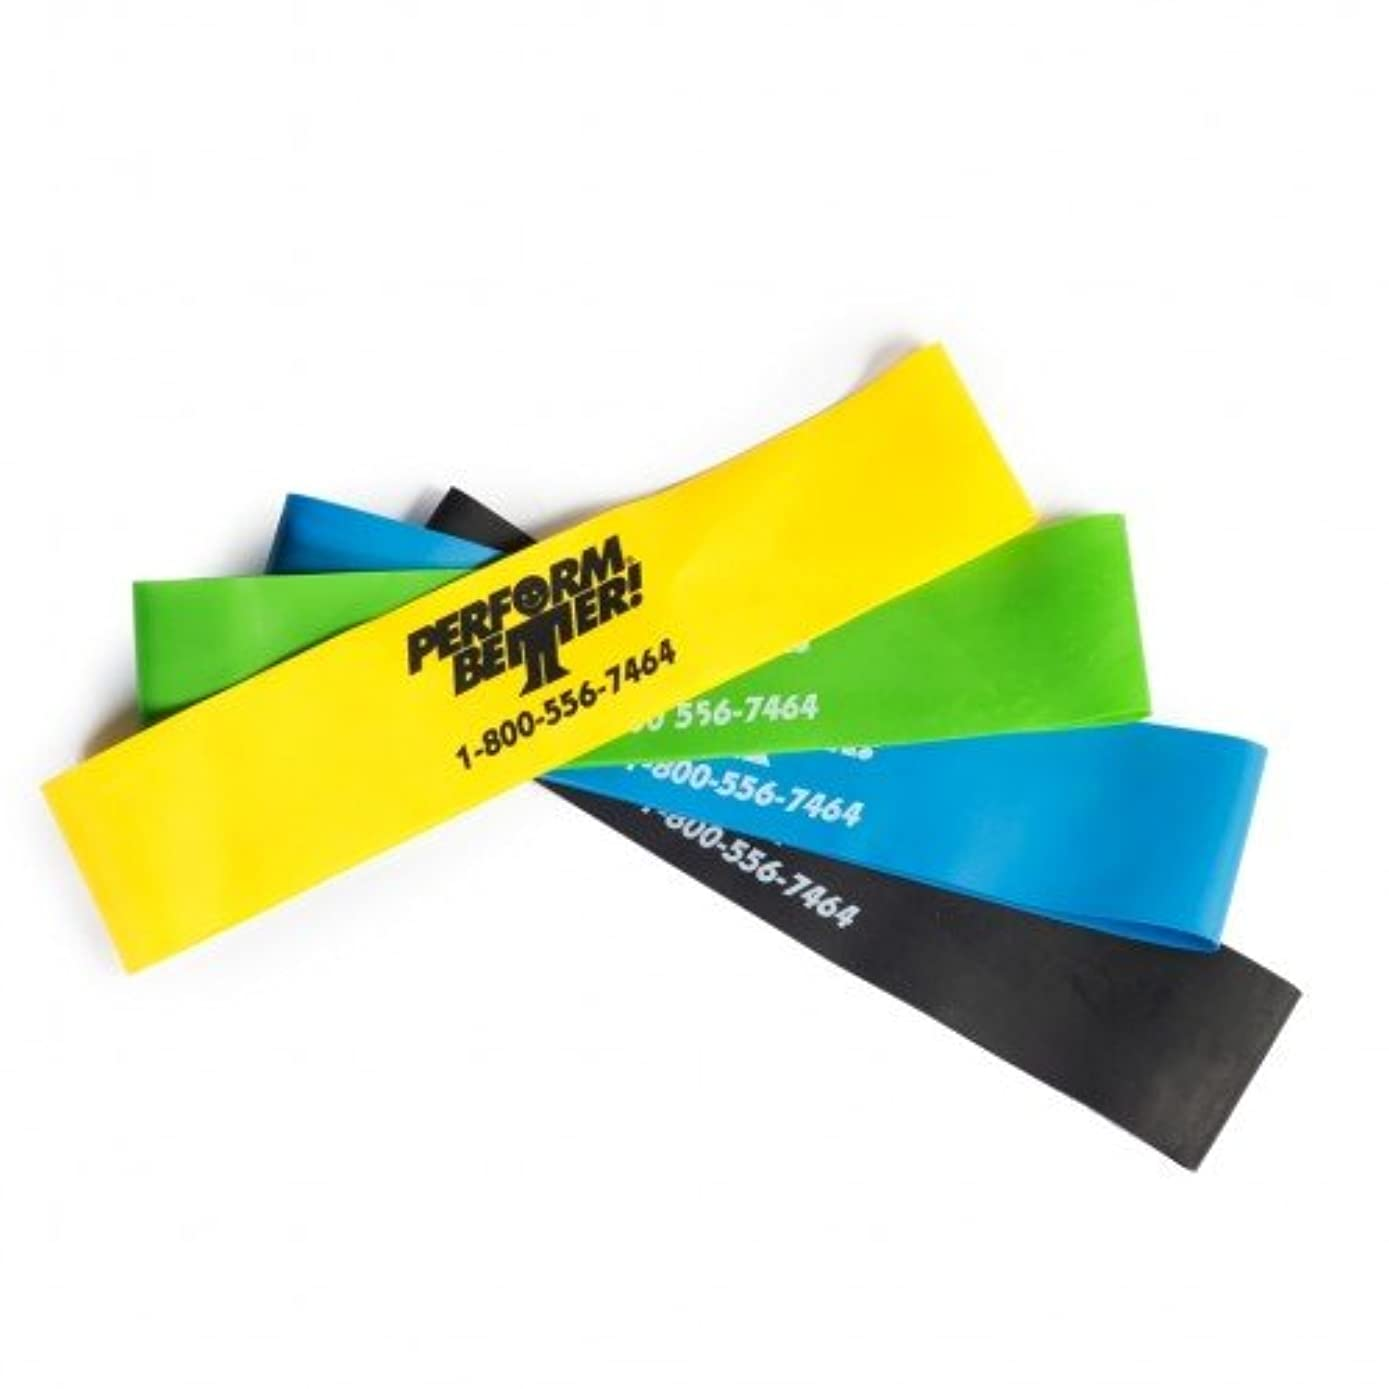 Perform Better Professional Light Exercise Mini XL Band (10 Pack)